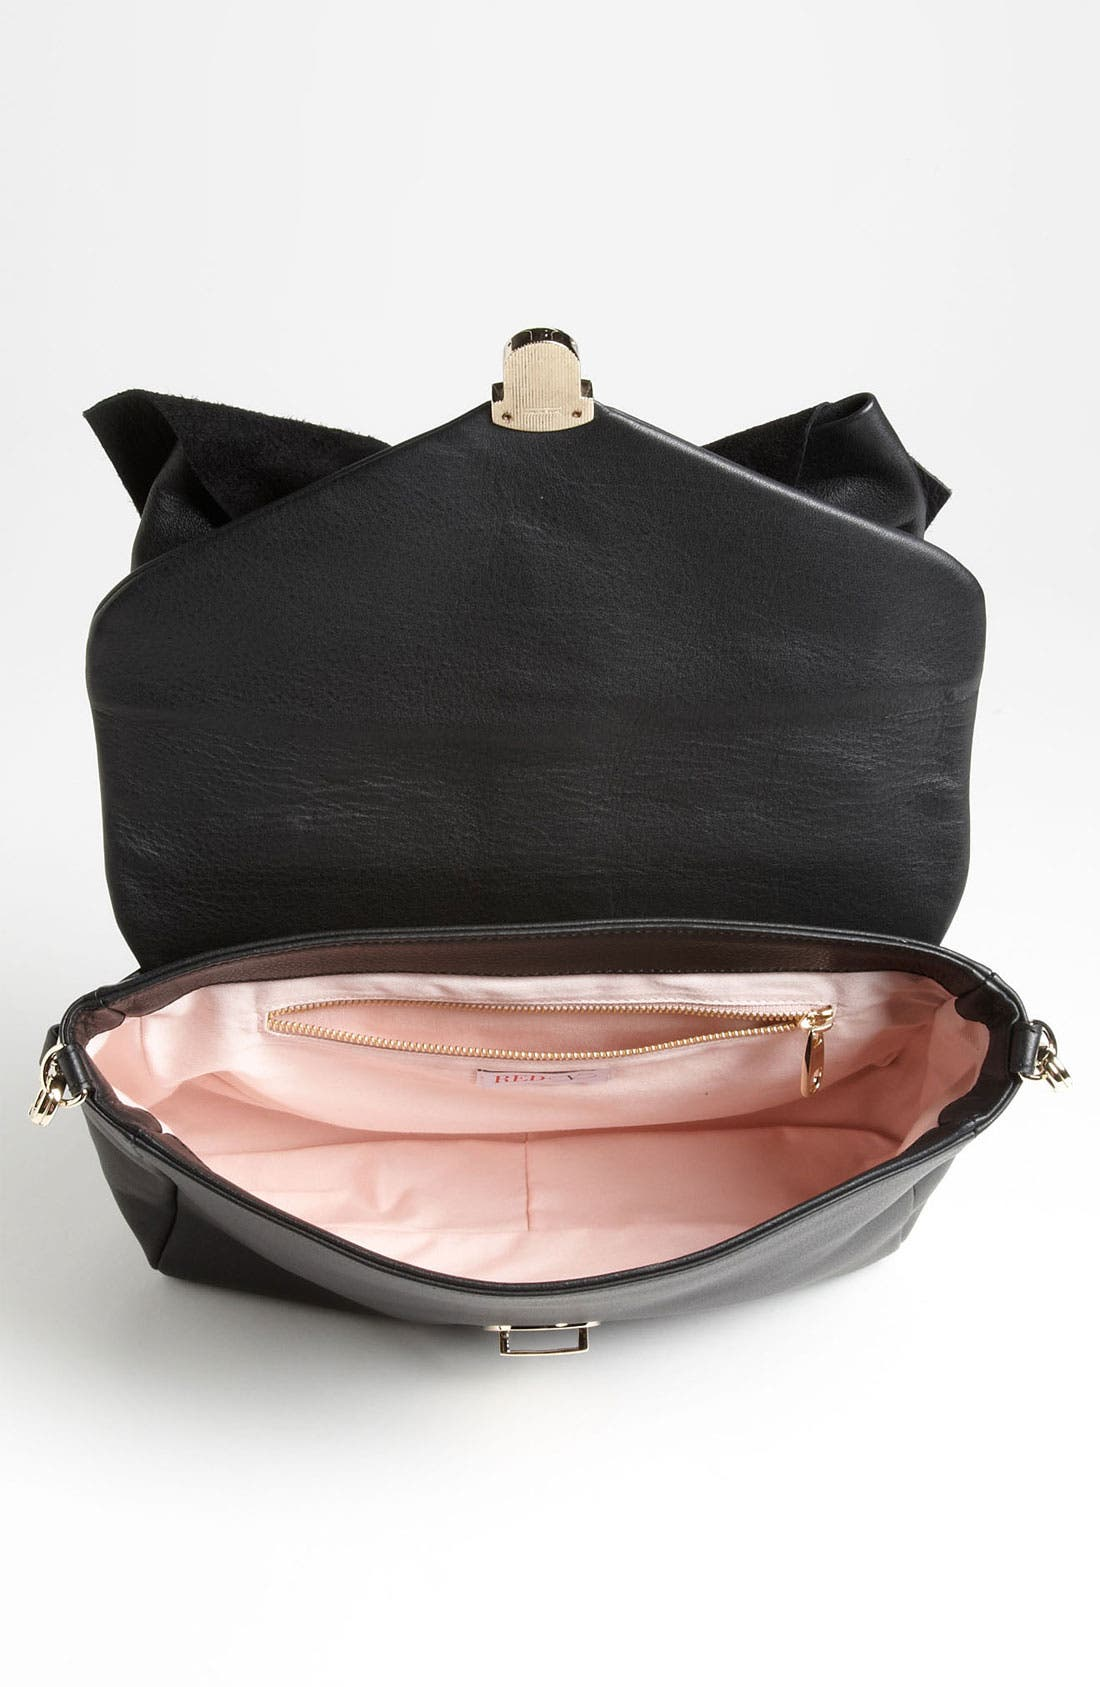 Alternate Image 3  - RED Valentino 'Bow' Top Handle Leather Satchel